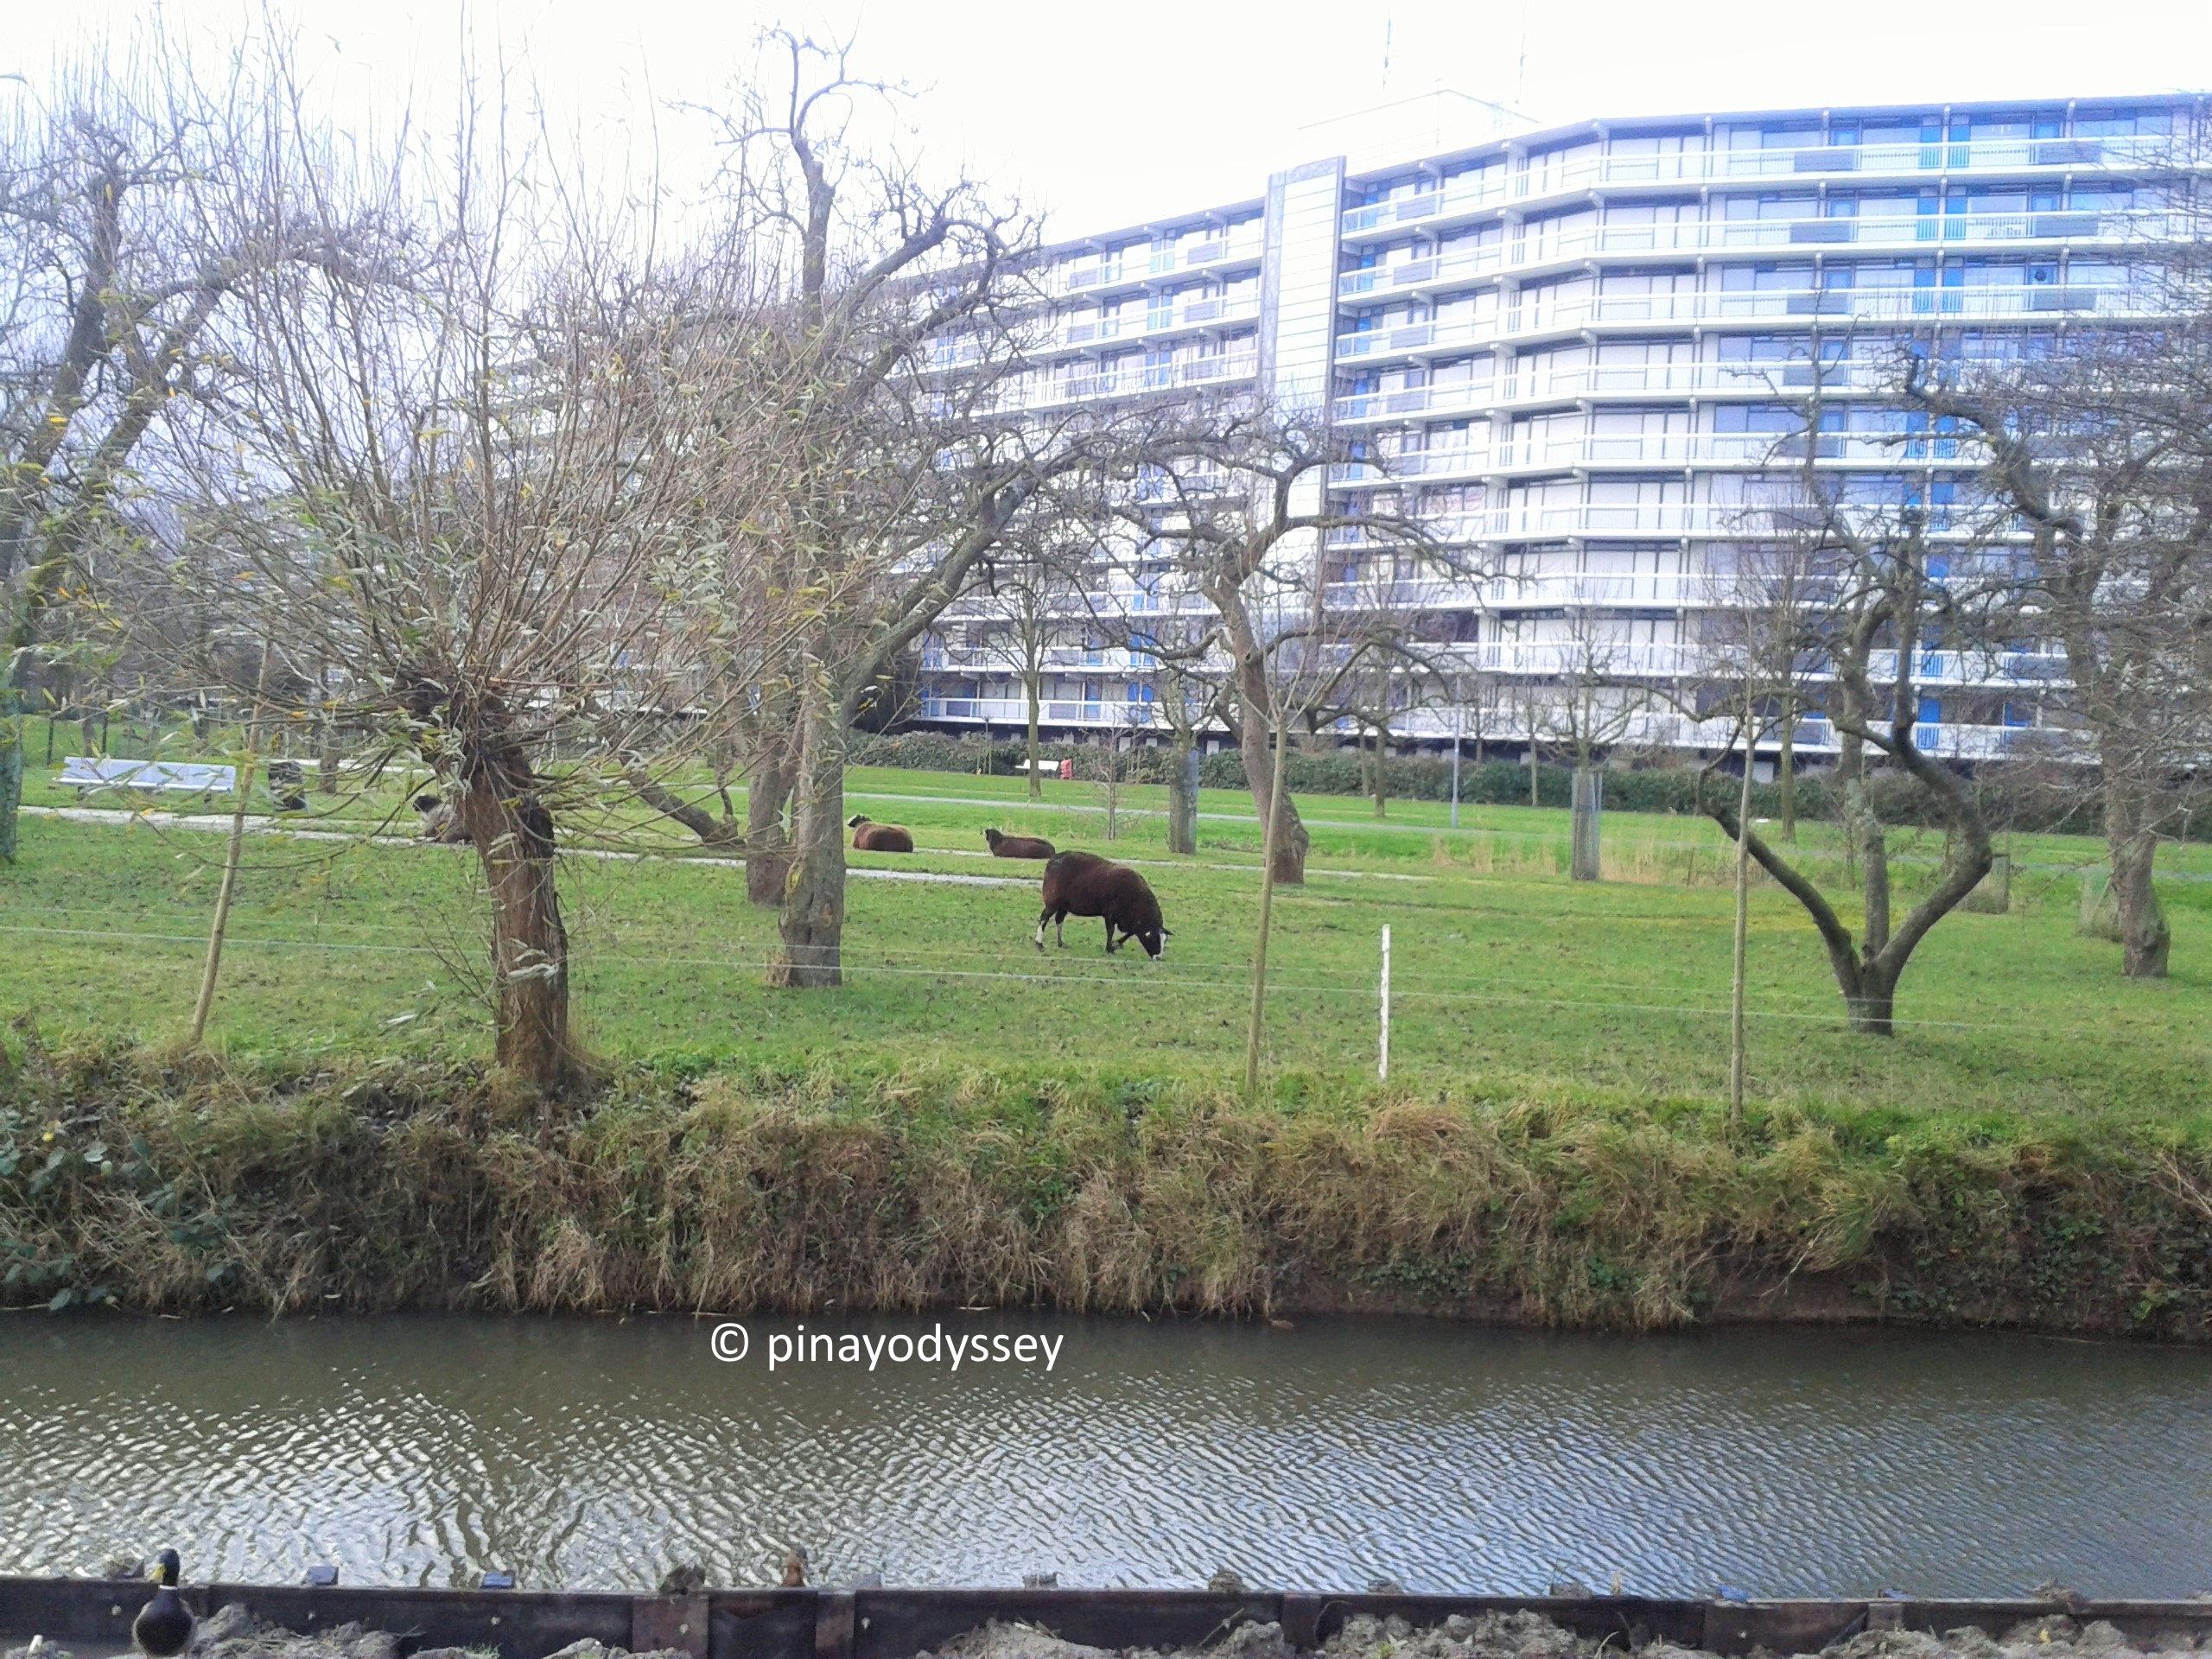 The enduring Dutch town of Spijkenisse – PinayOdyssey